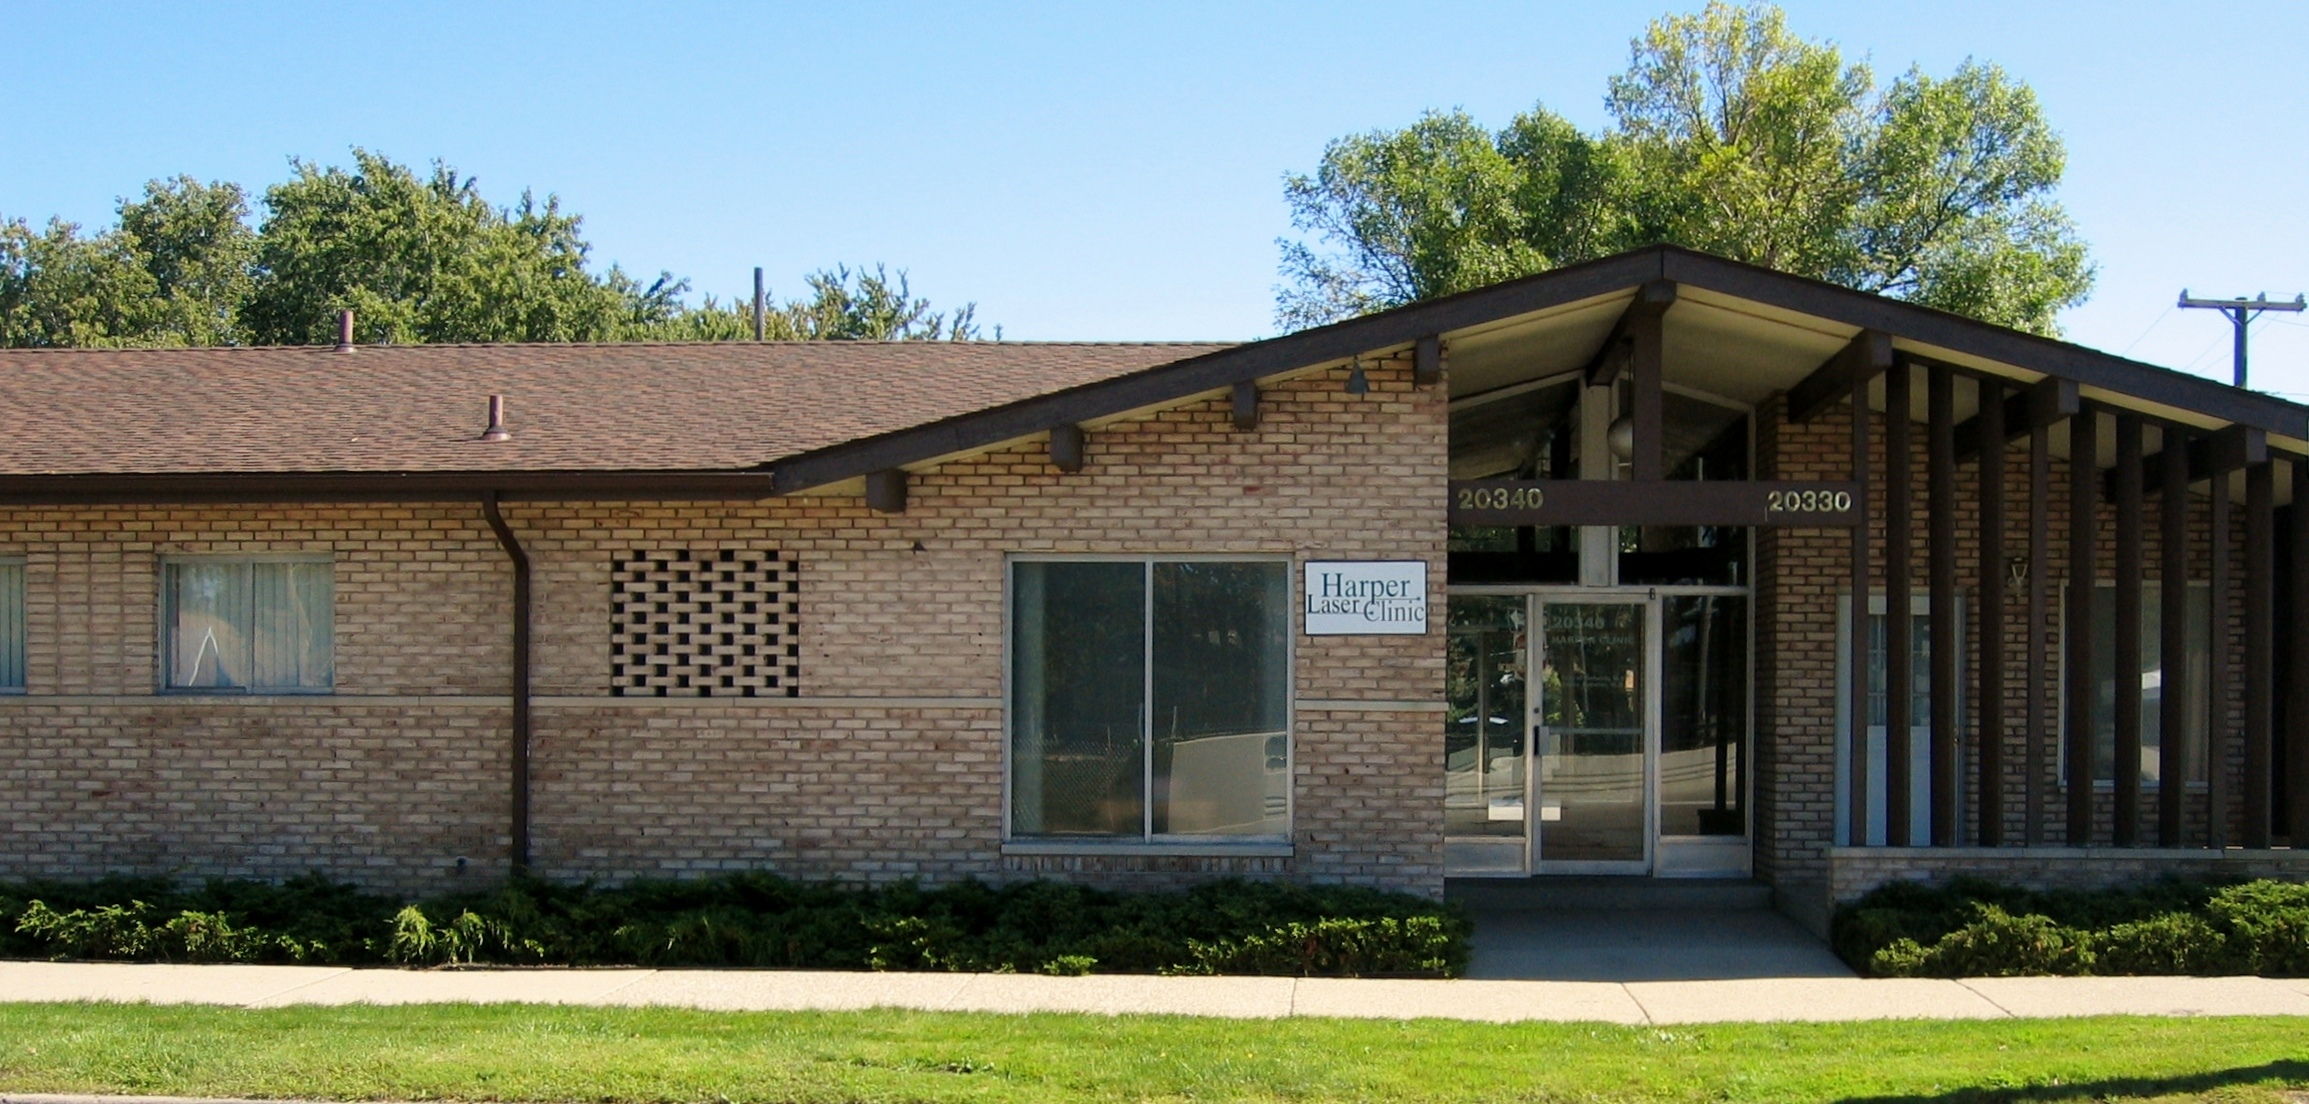 Image of Harper Clinic Office